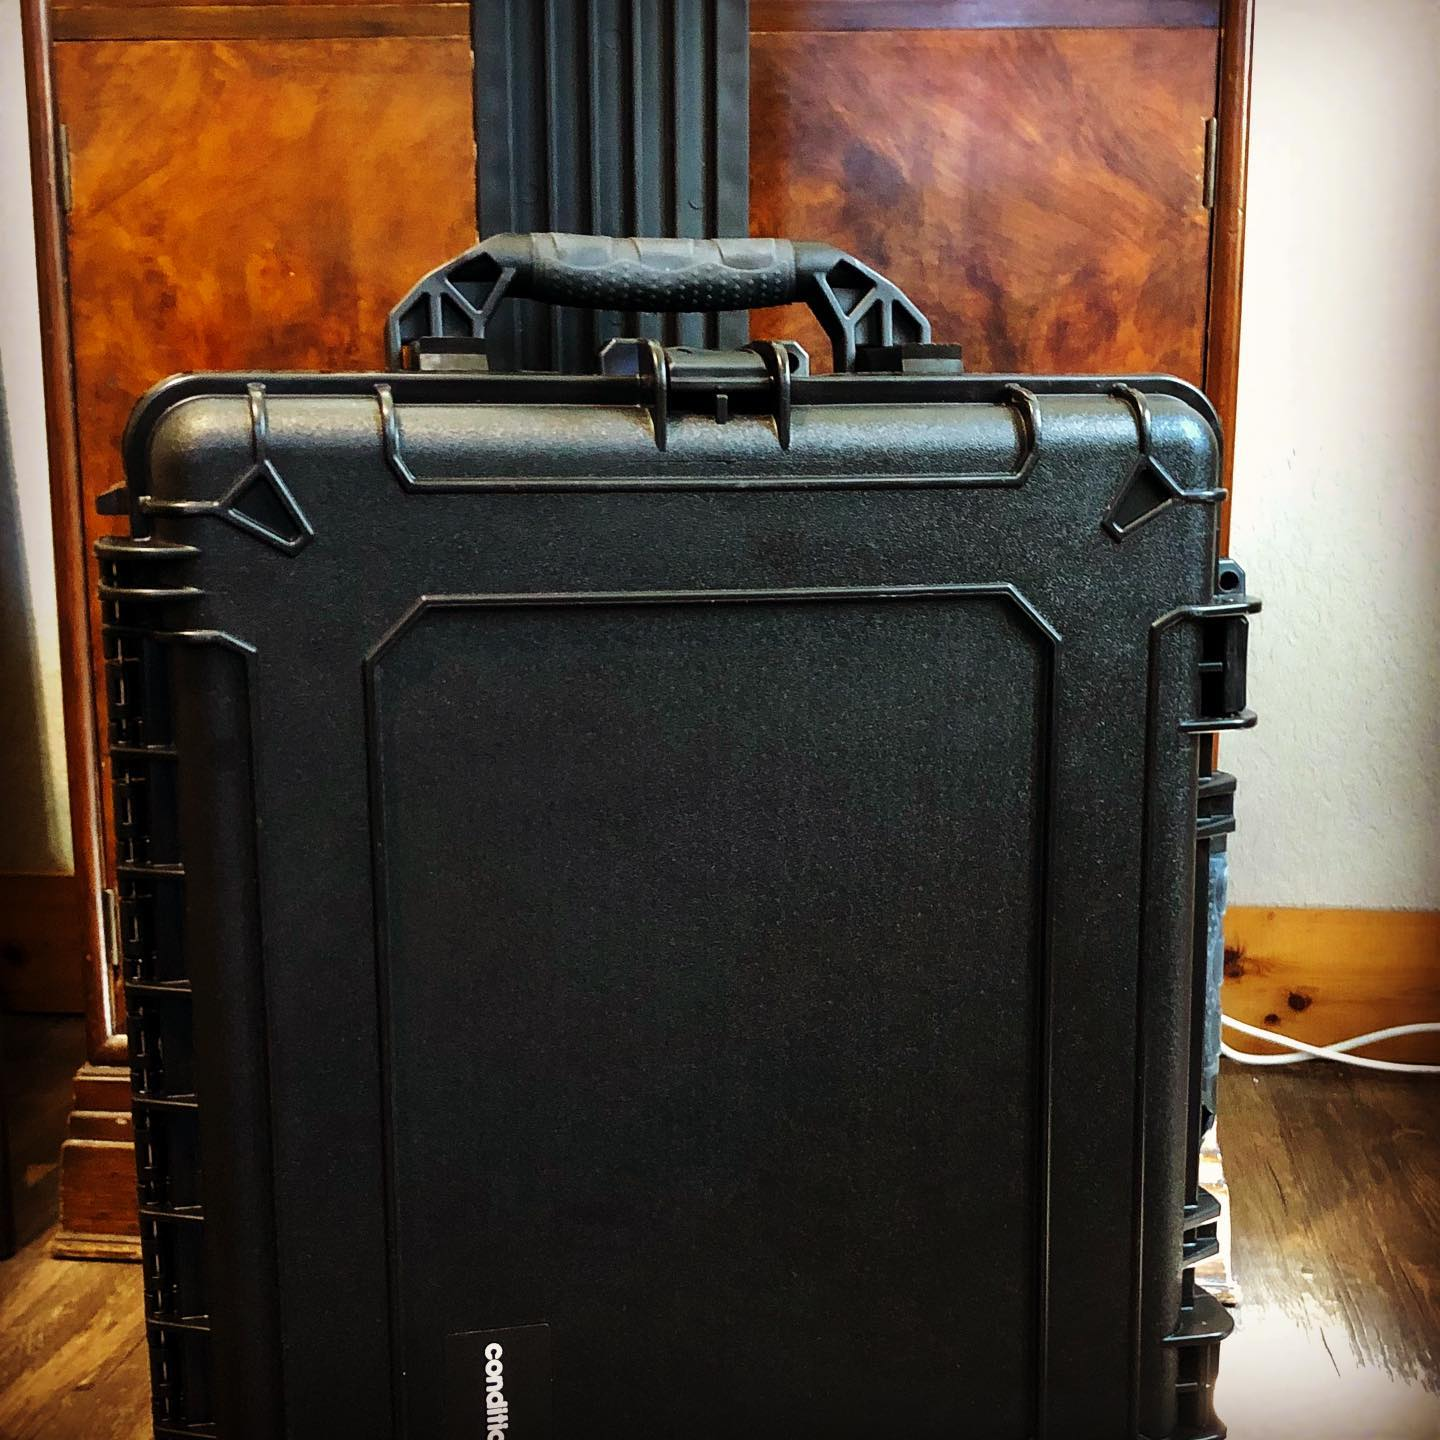 New heavy duty travel case for  some of our evaluators' tools